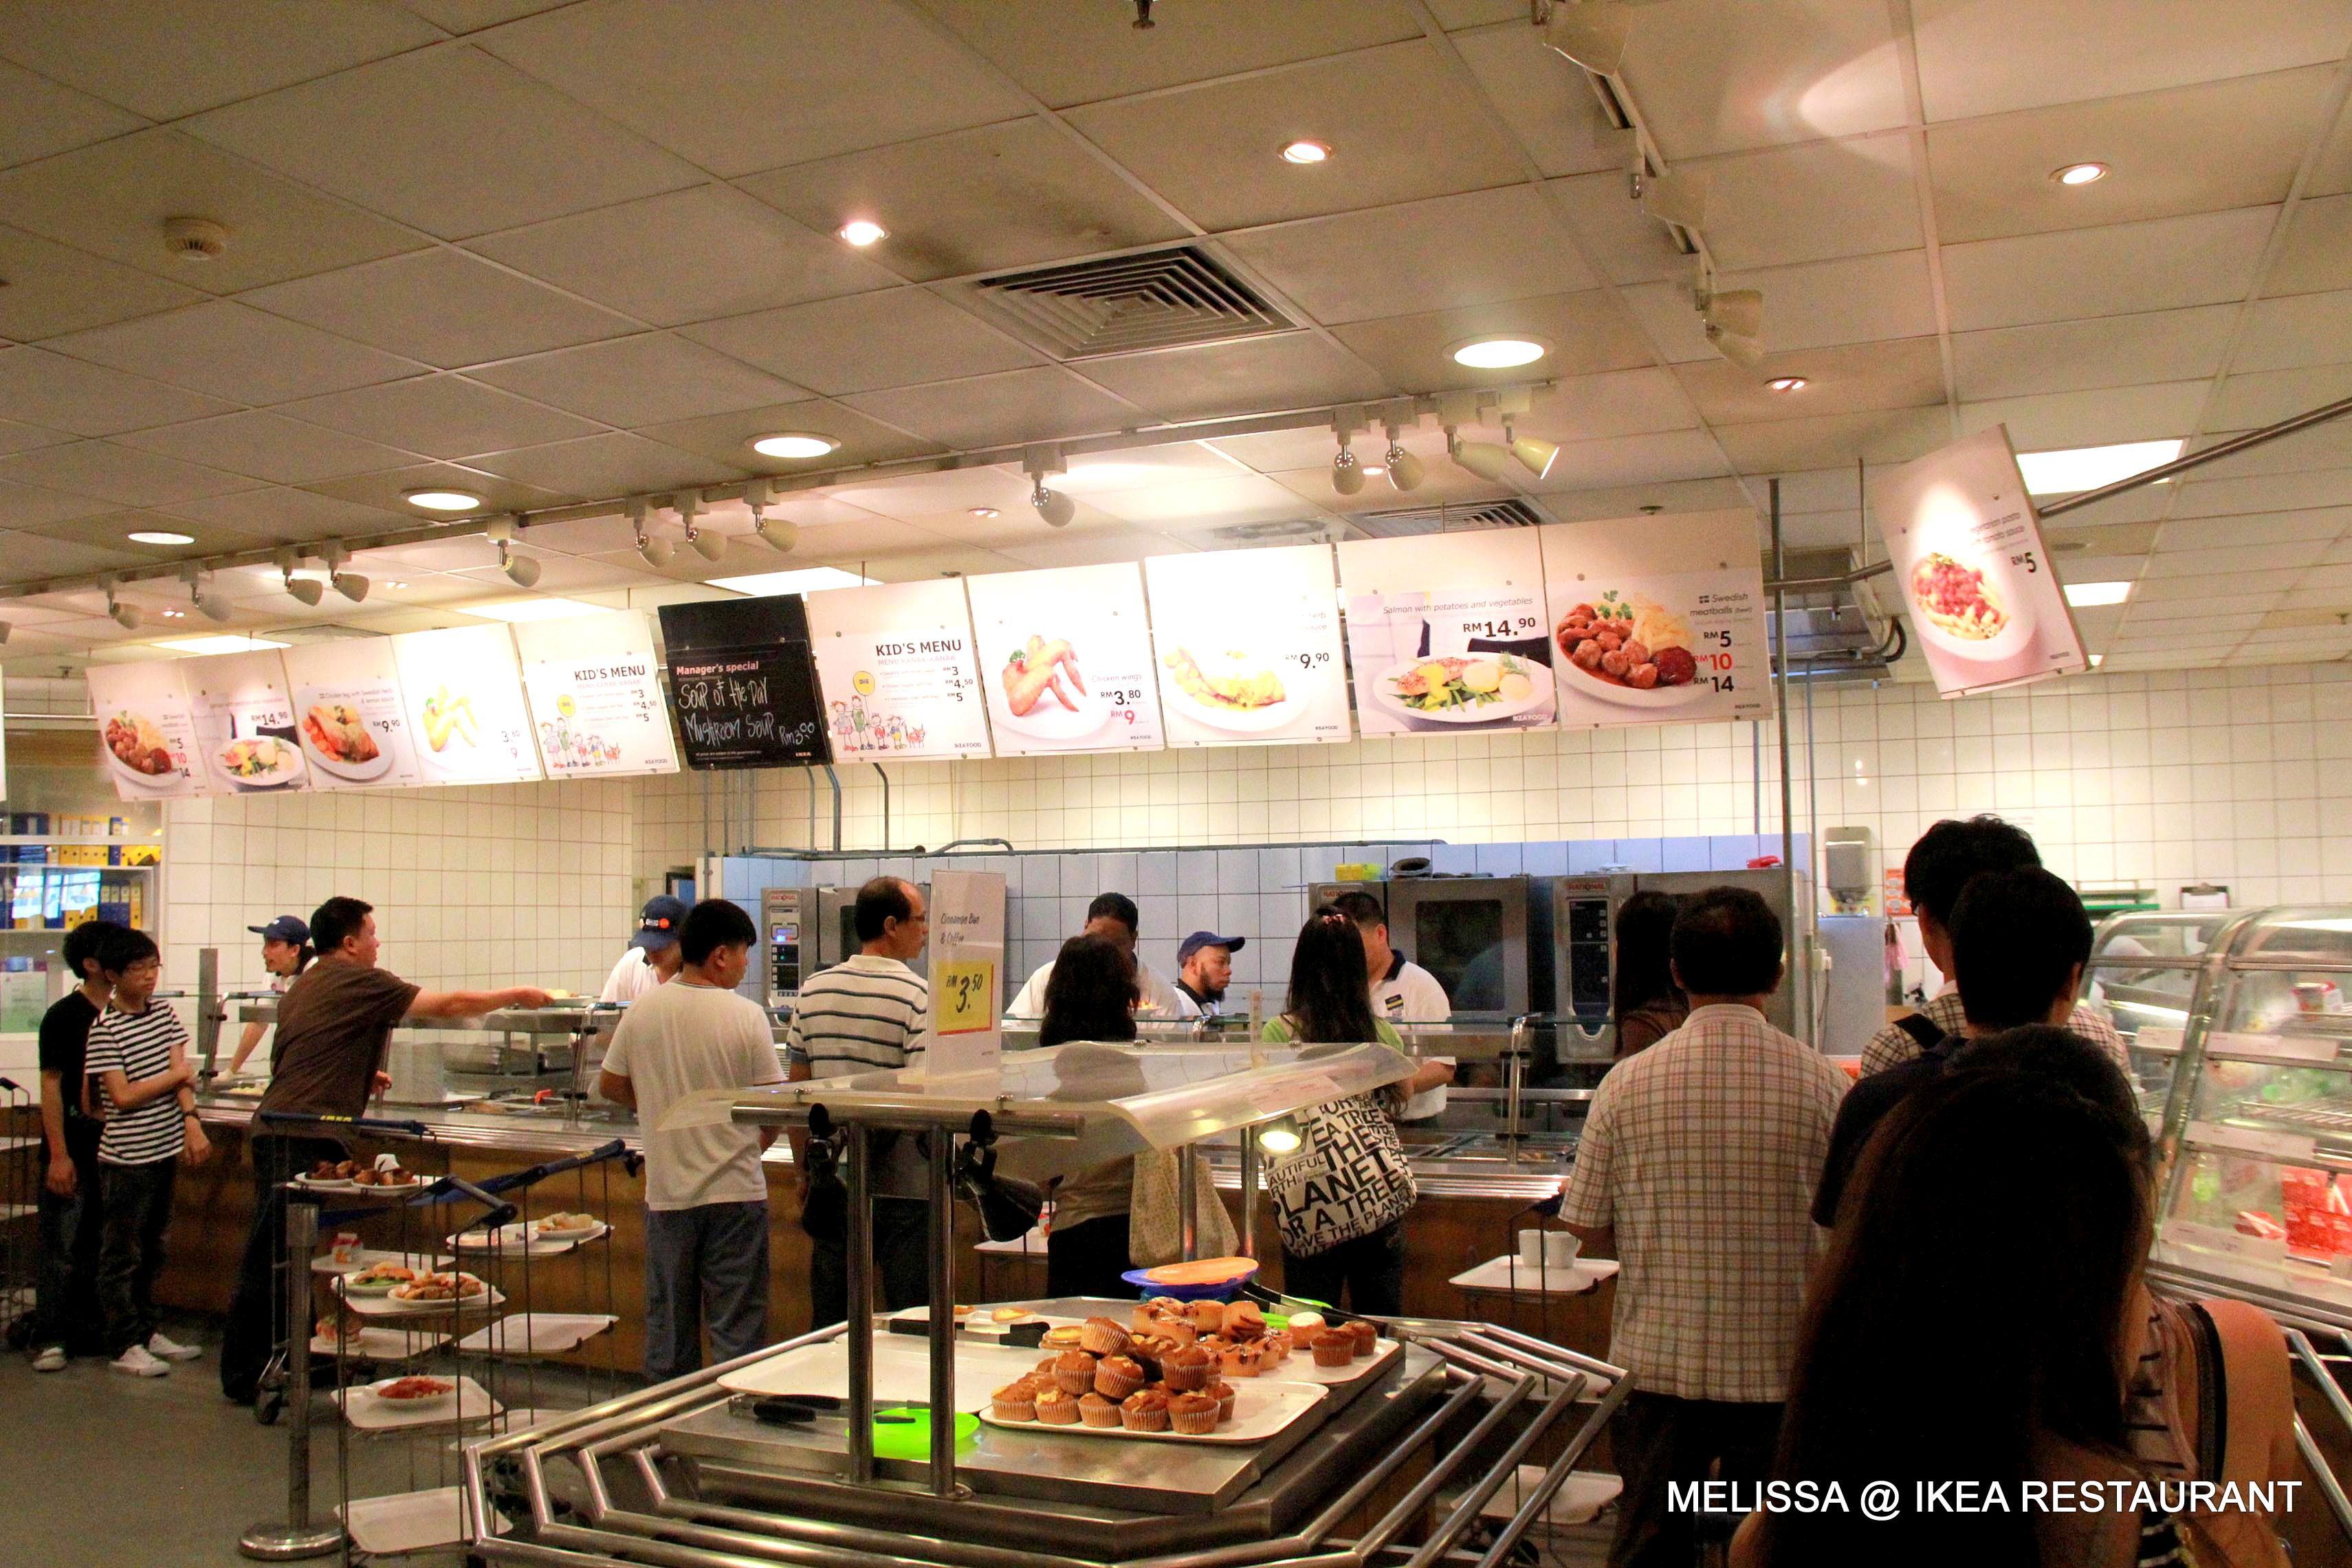 Lunch Ikea Restaurant This Is Me Melissa S Blog